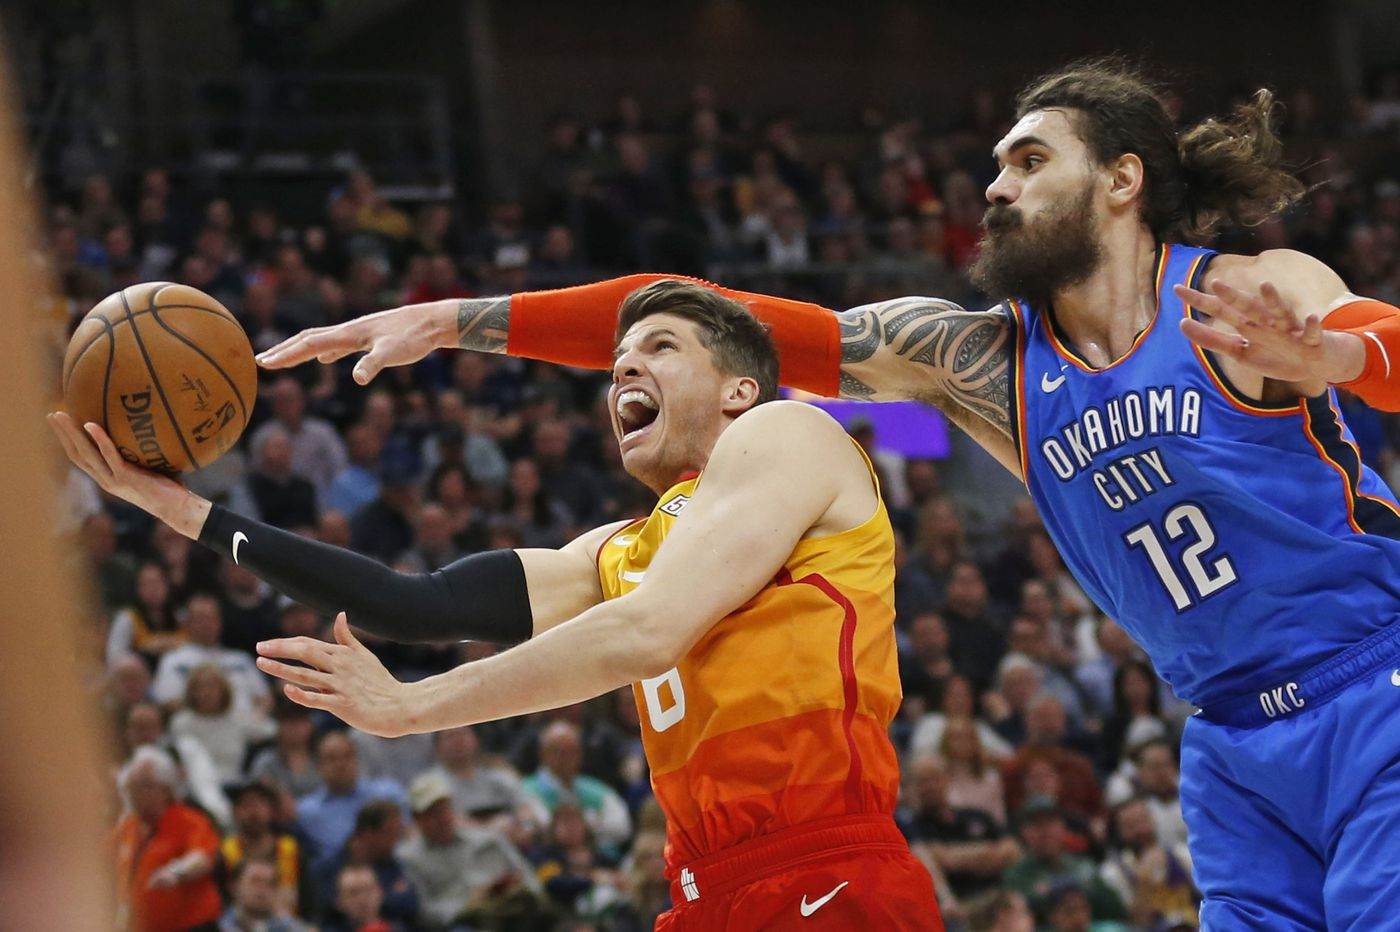 Could the Sixers get Kyle Korver to replace JJ Redick?